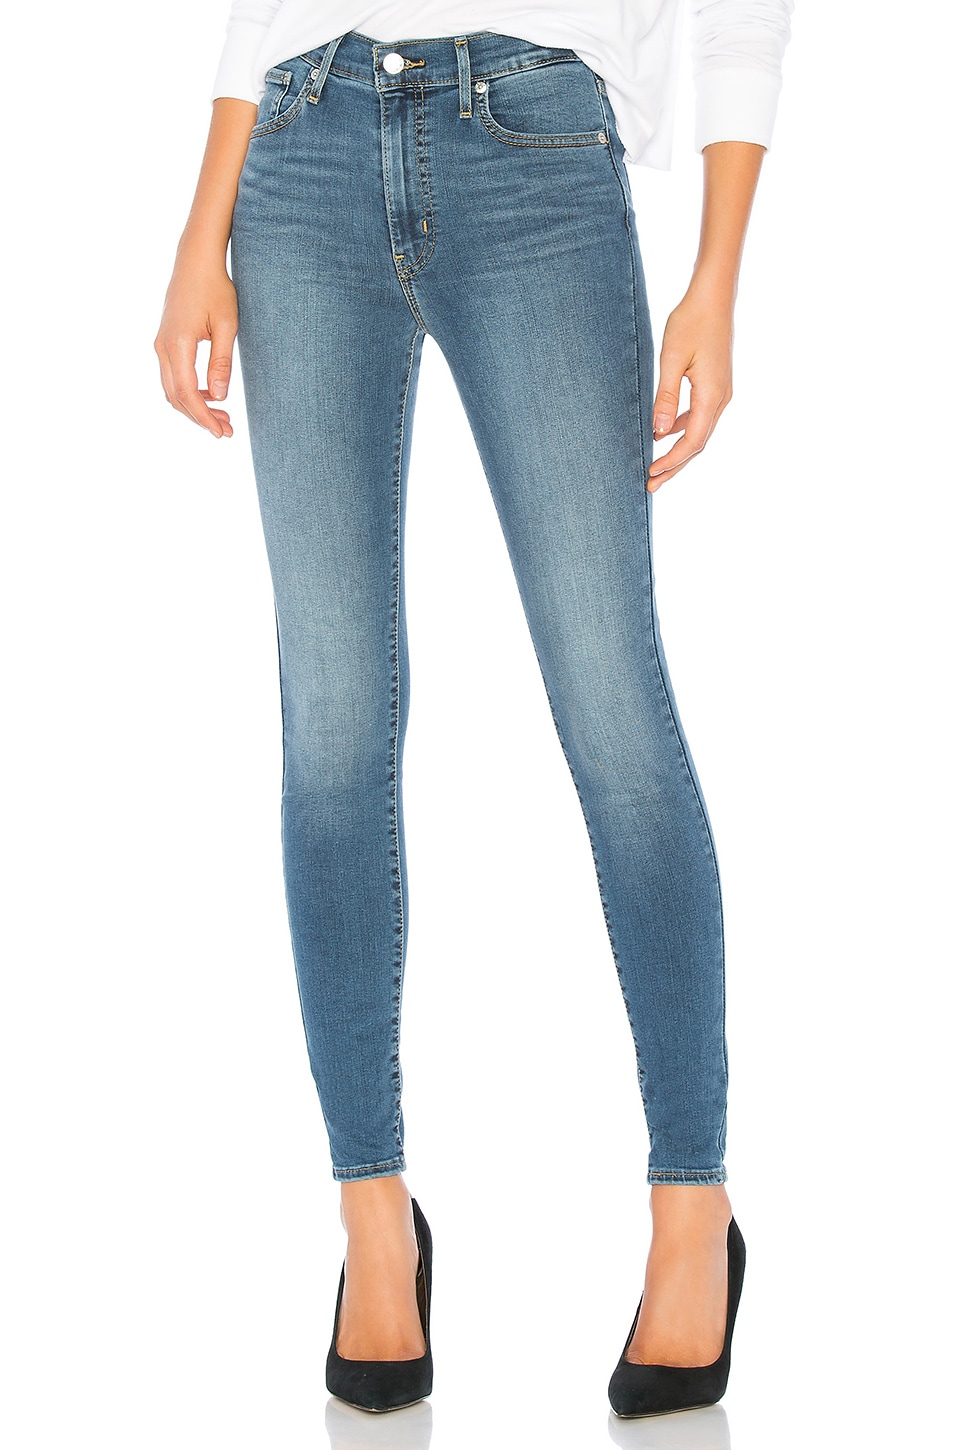 LEVI'S Mile High Super Skinny in Indigo Lounge